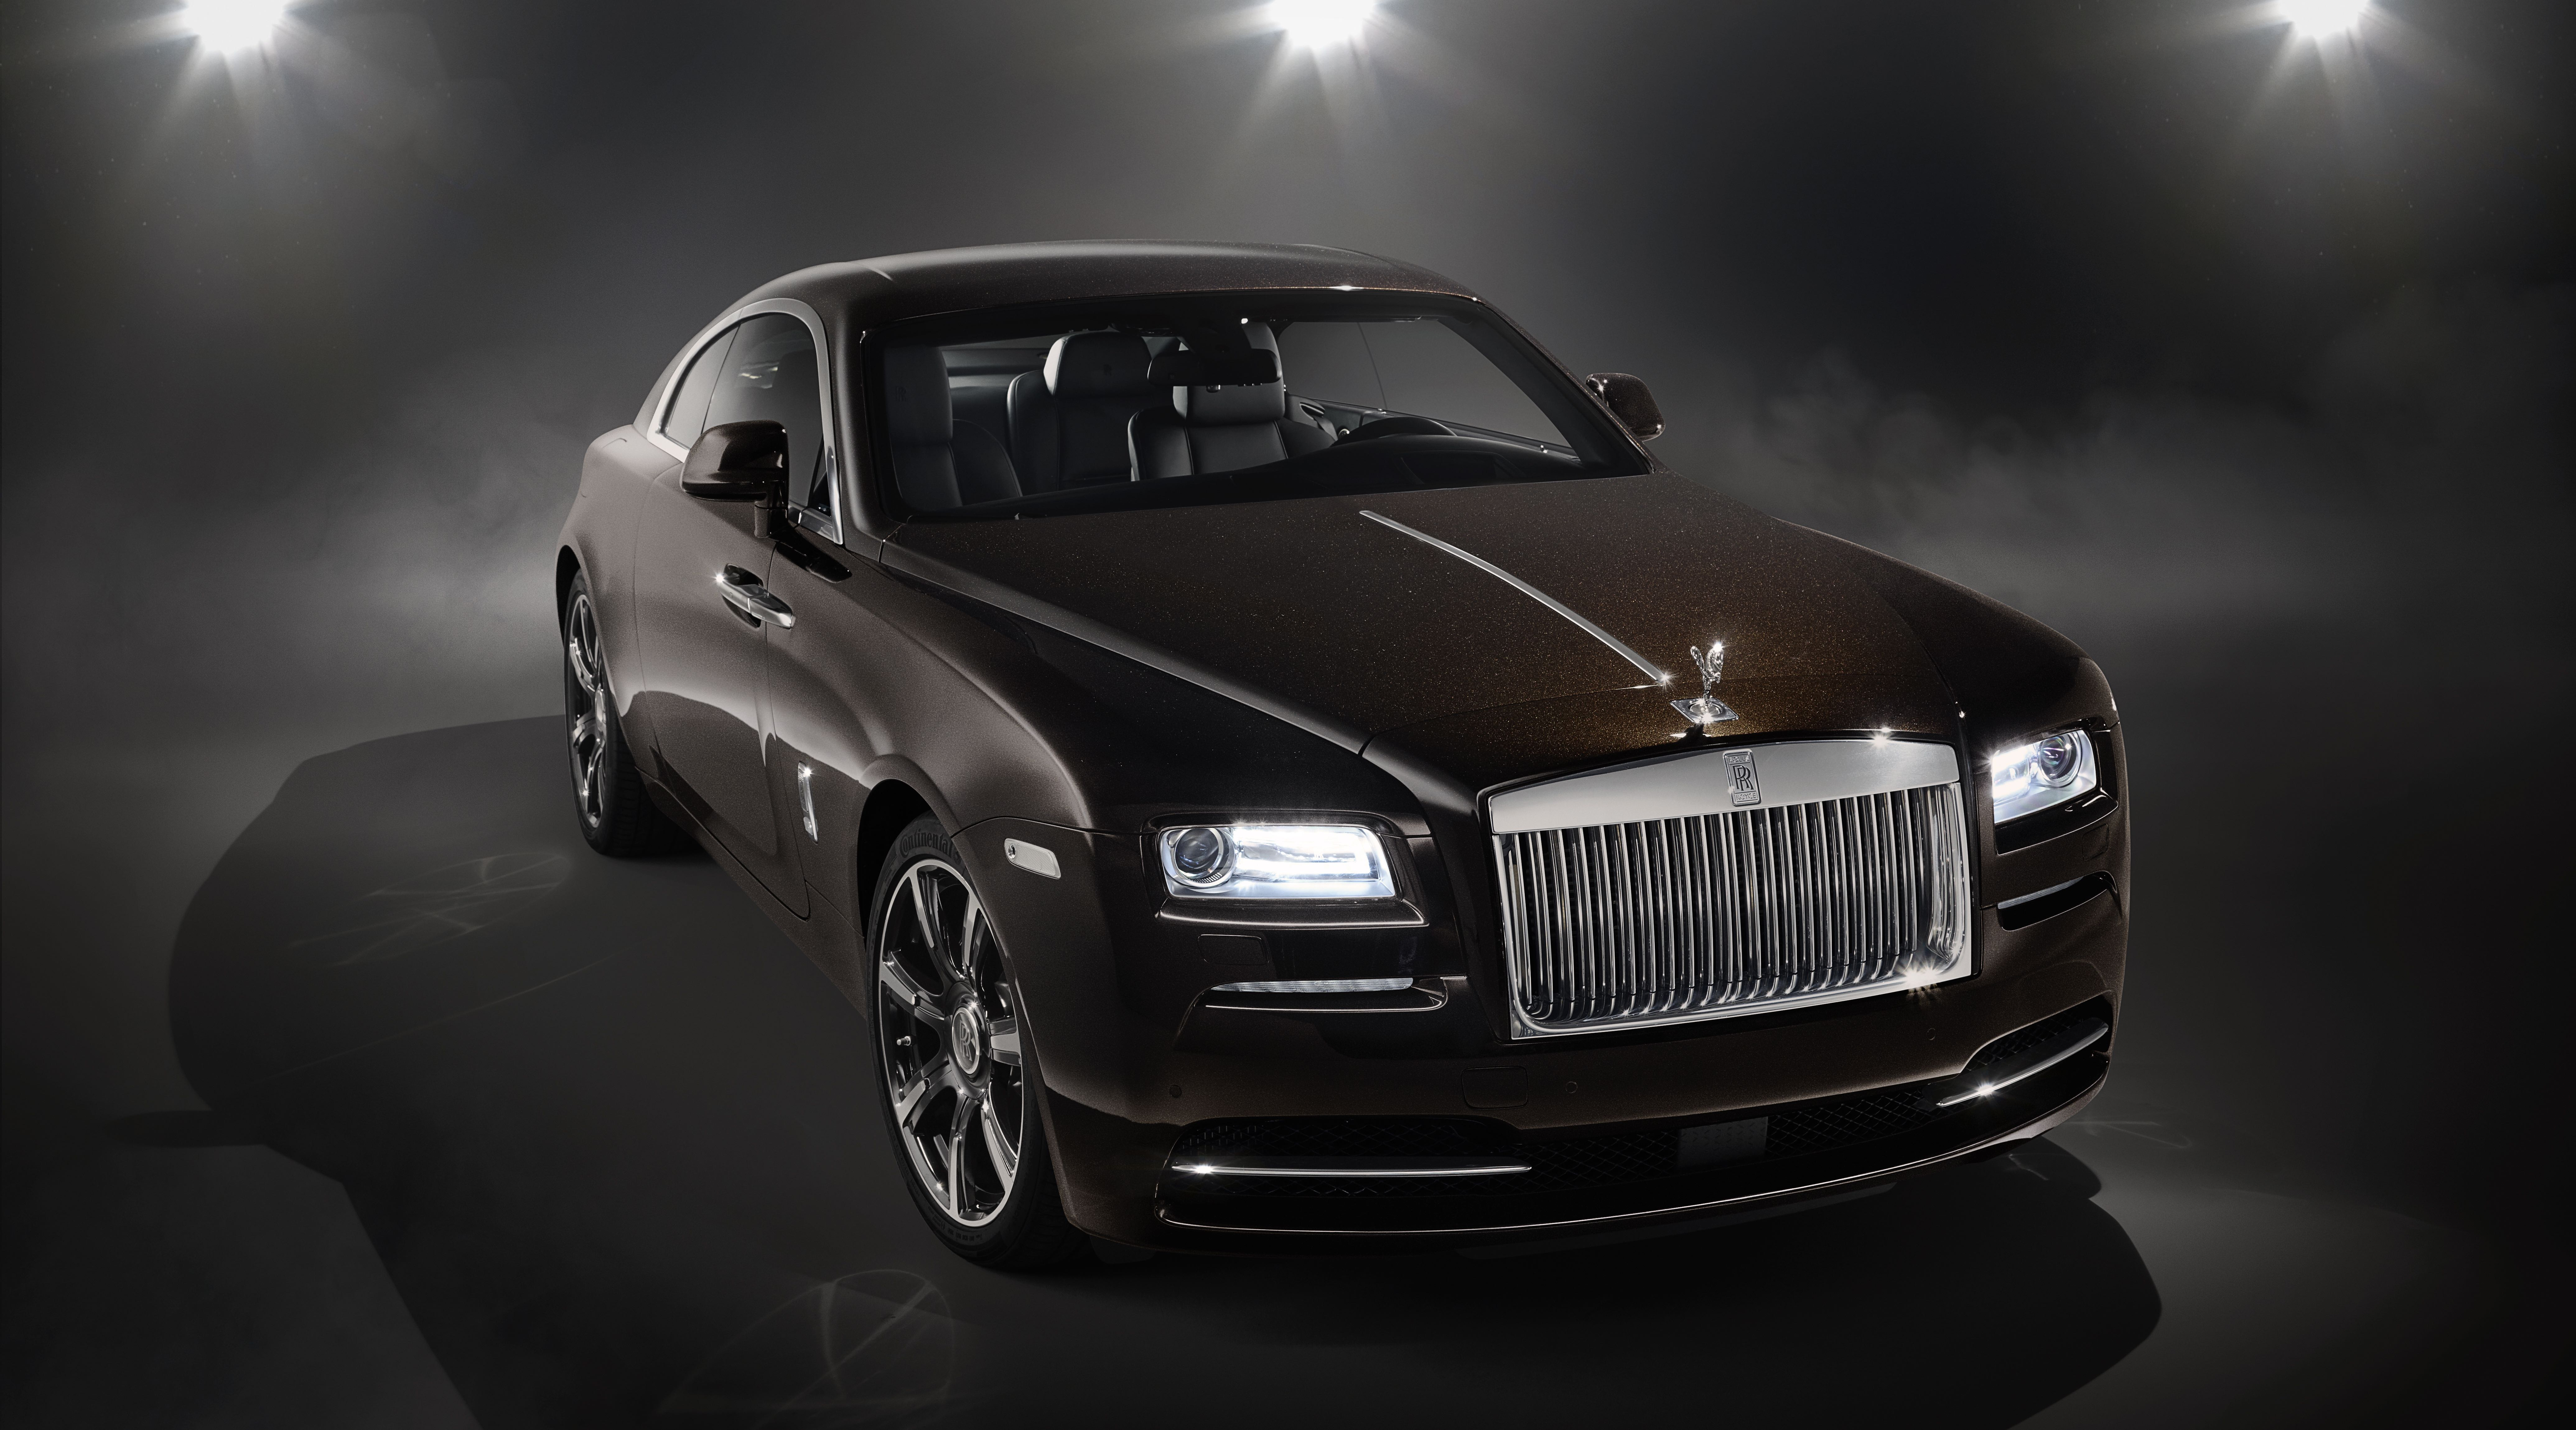 Rolls royce wraith inspired by music littlegate publishing - Keith moon rolls royce swimming pool ...